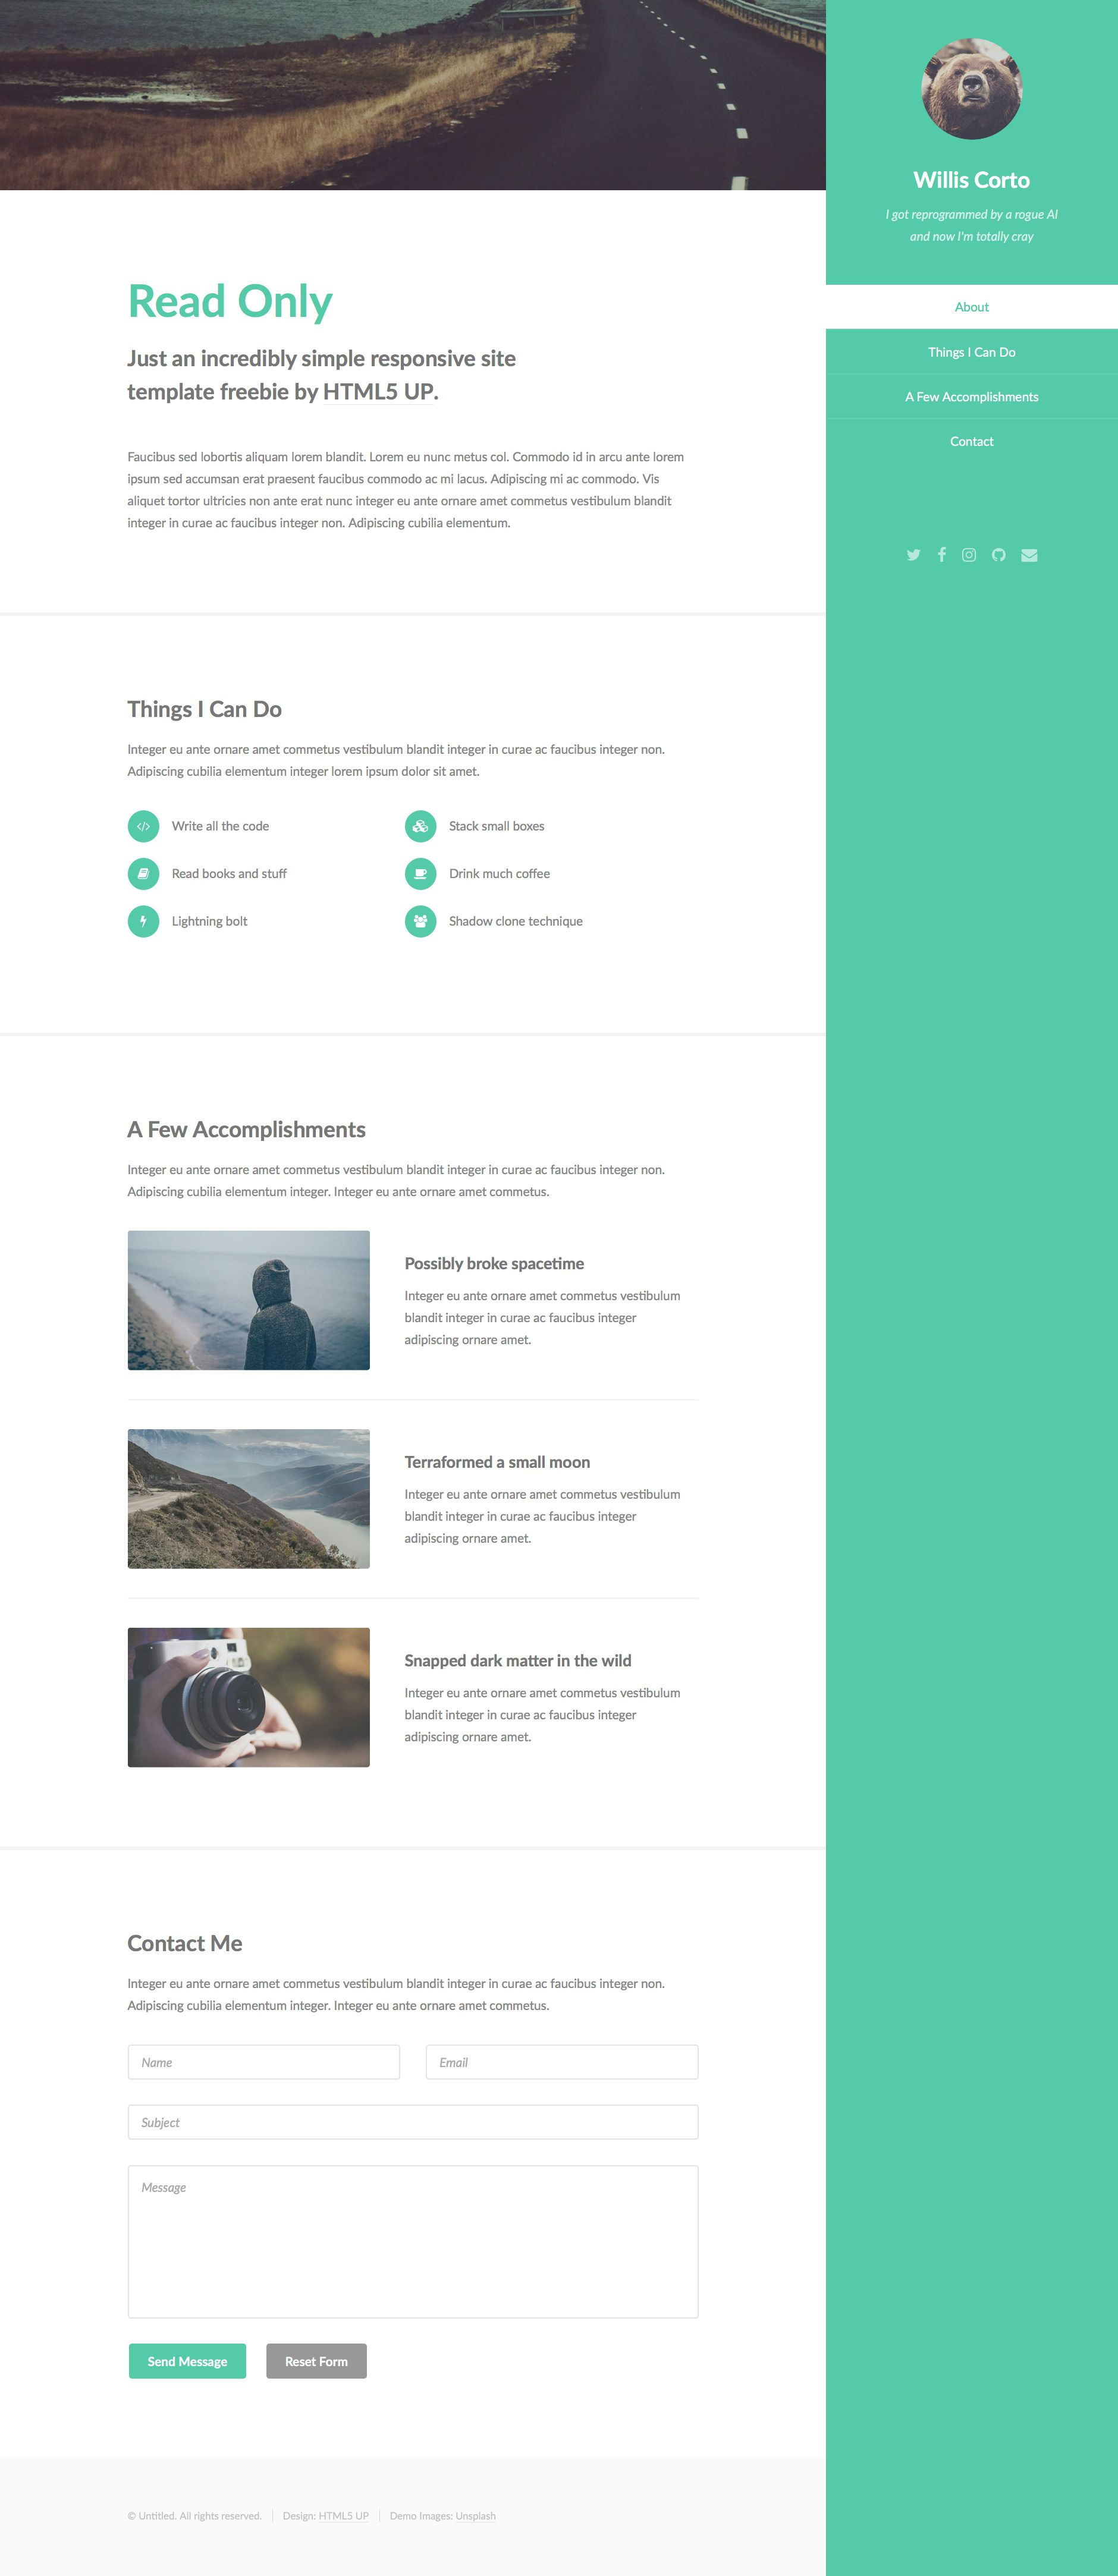 Read Only Is A Super Simple Single Page Responsive Html5 Website